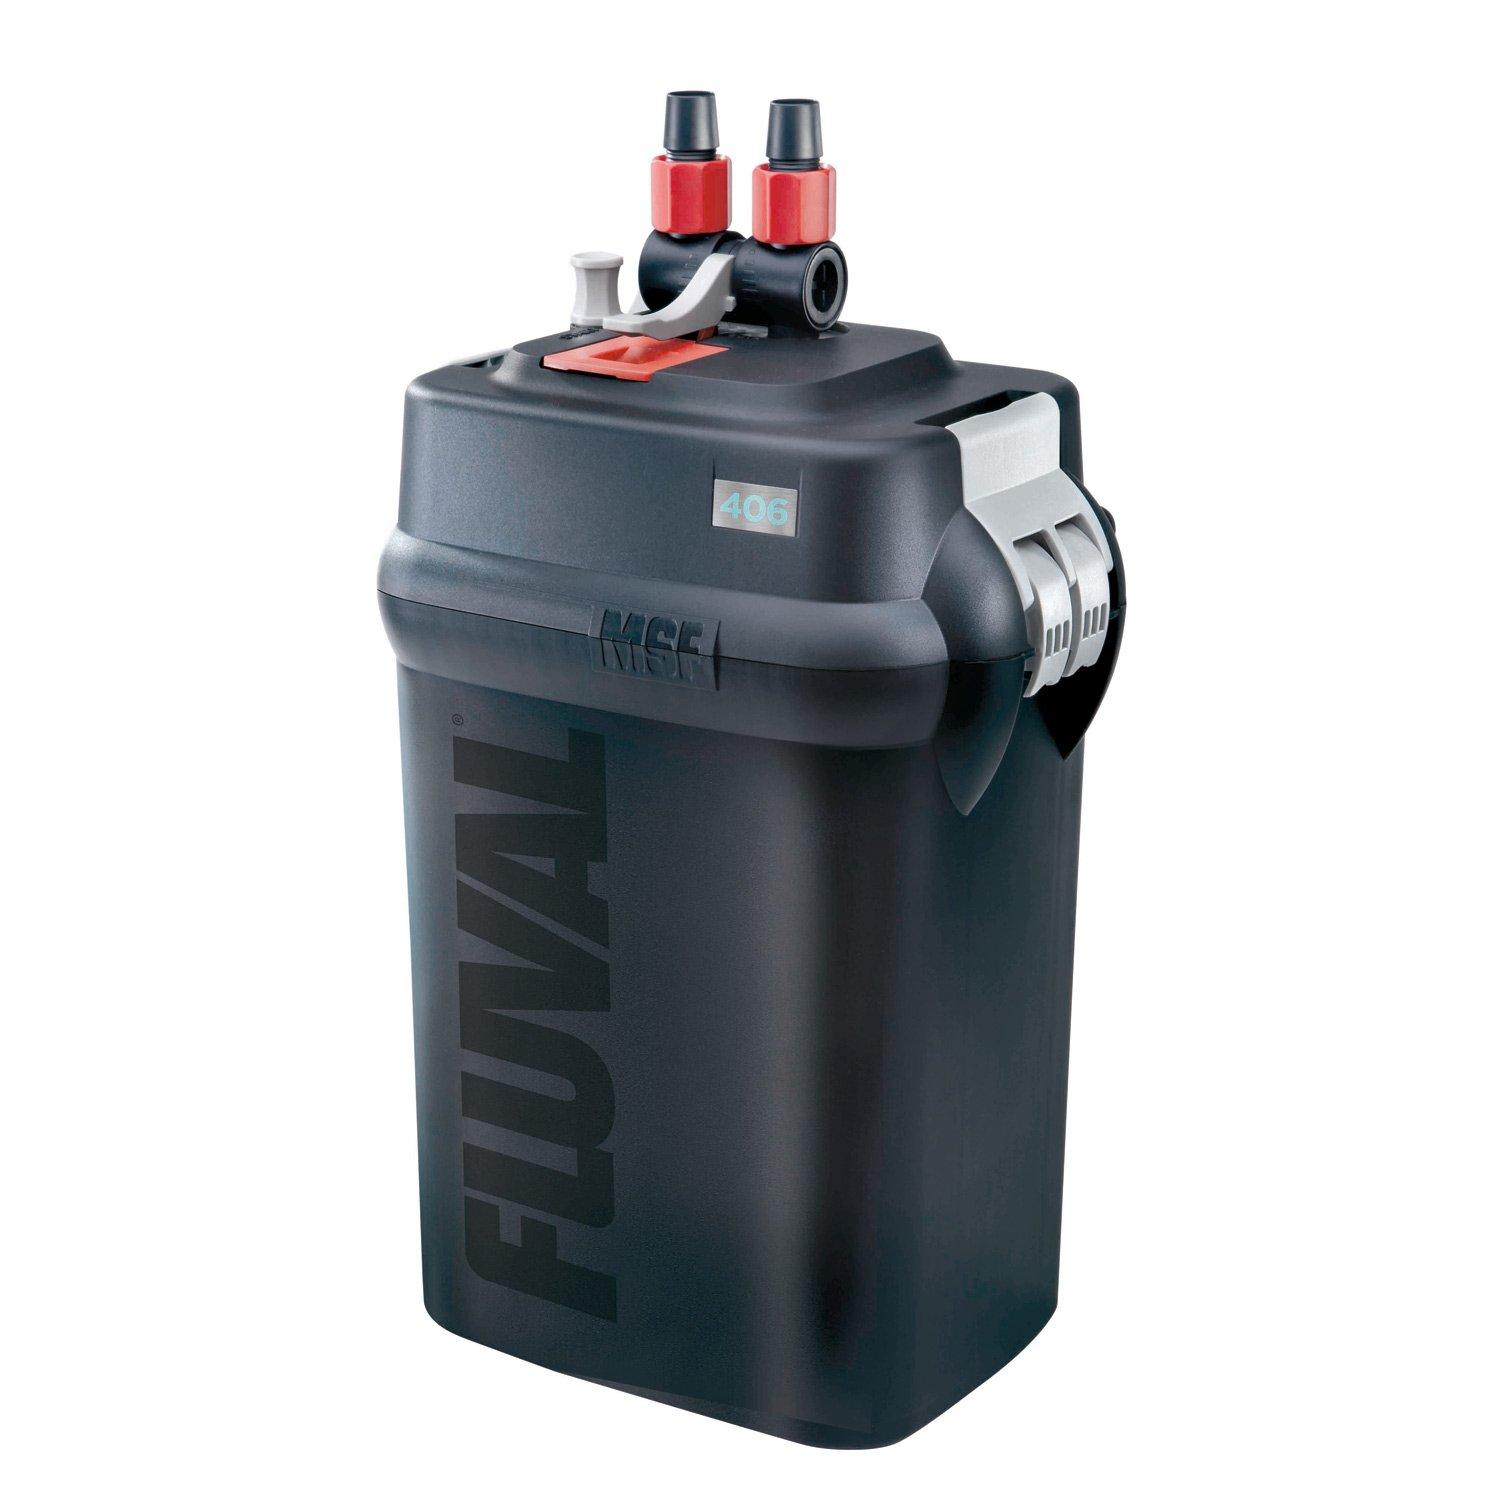 Fluval 406 external canister filters petco for Petco fish tank filters